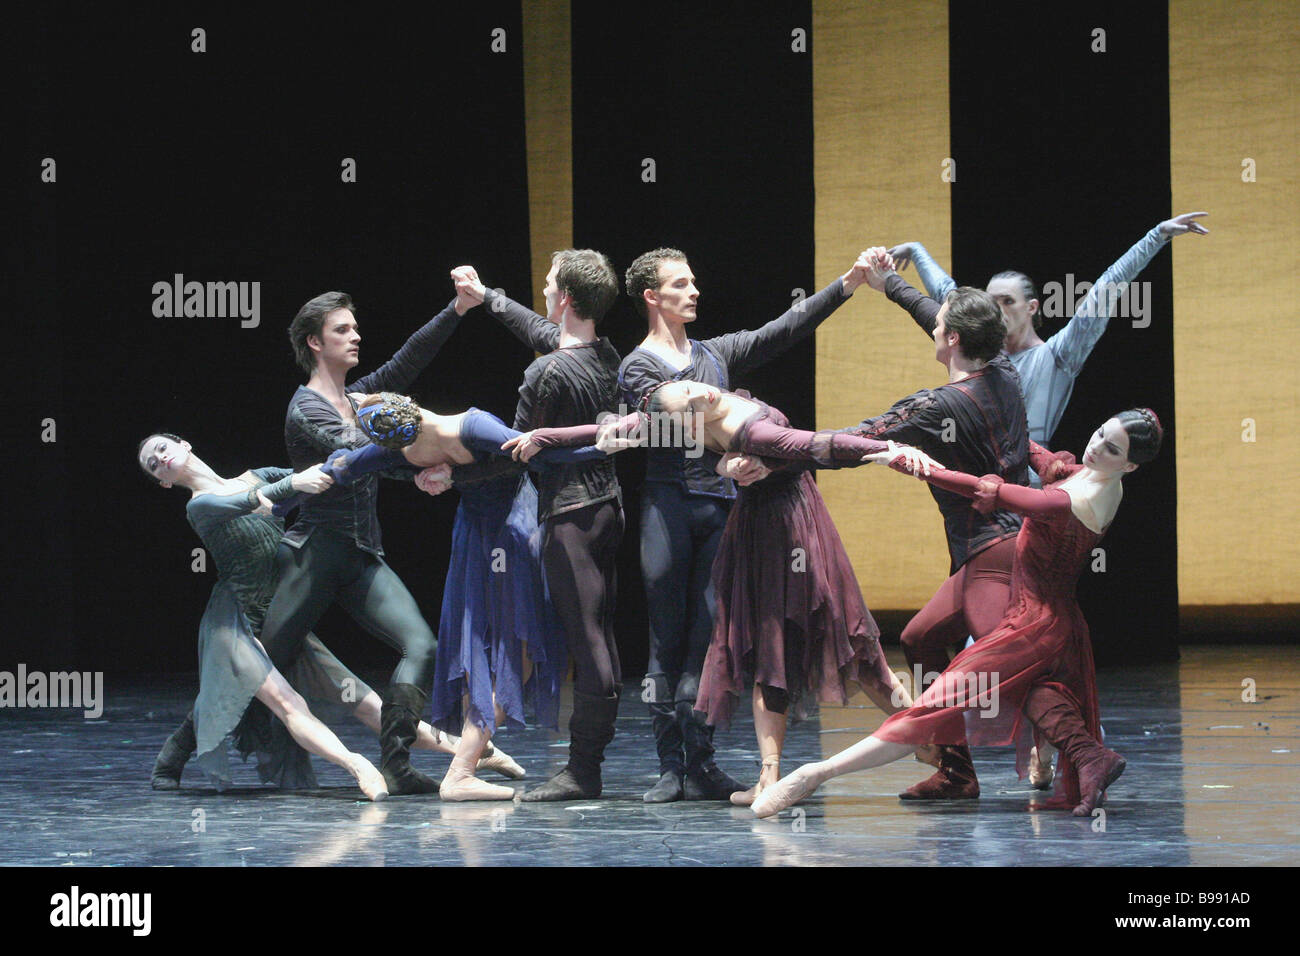 The ballet Misericordes with choreography by Christopher Wheeldon This ballet is performed in the framework of the - Stock Image